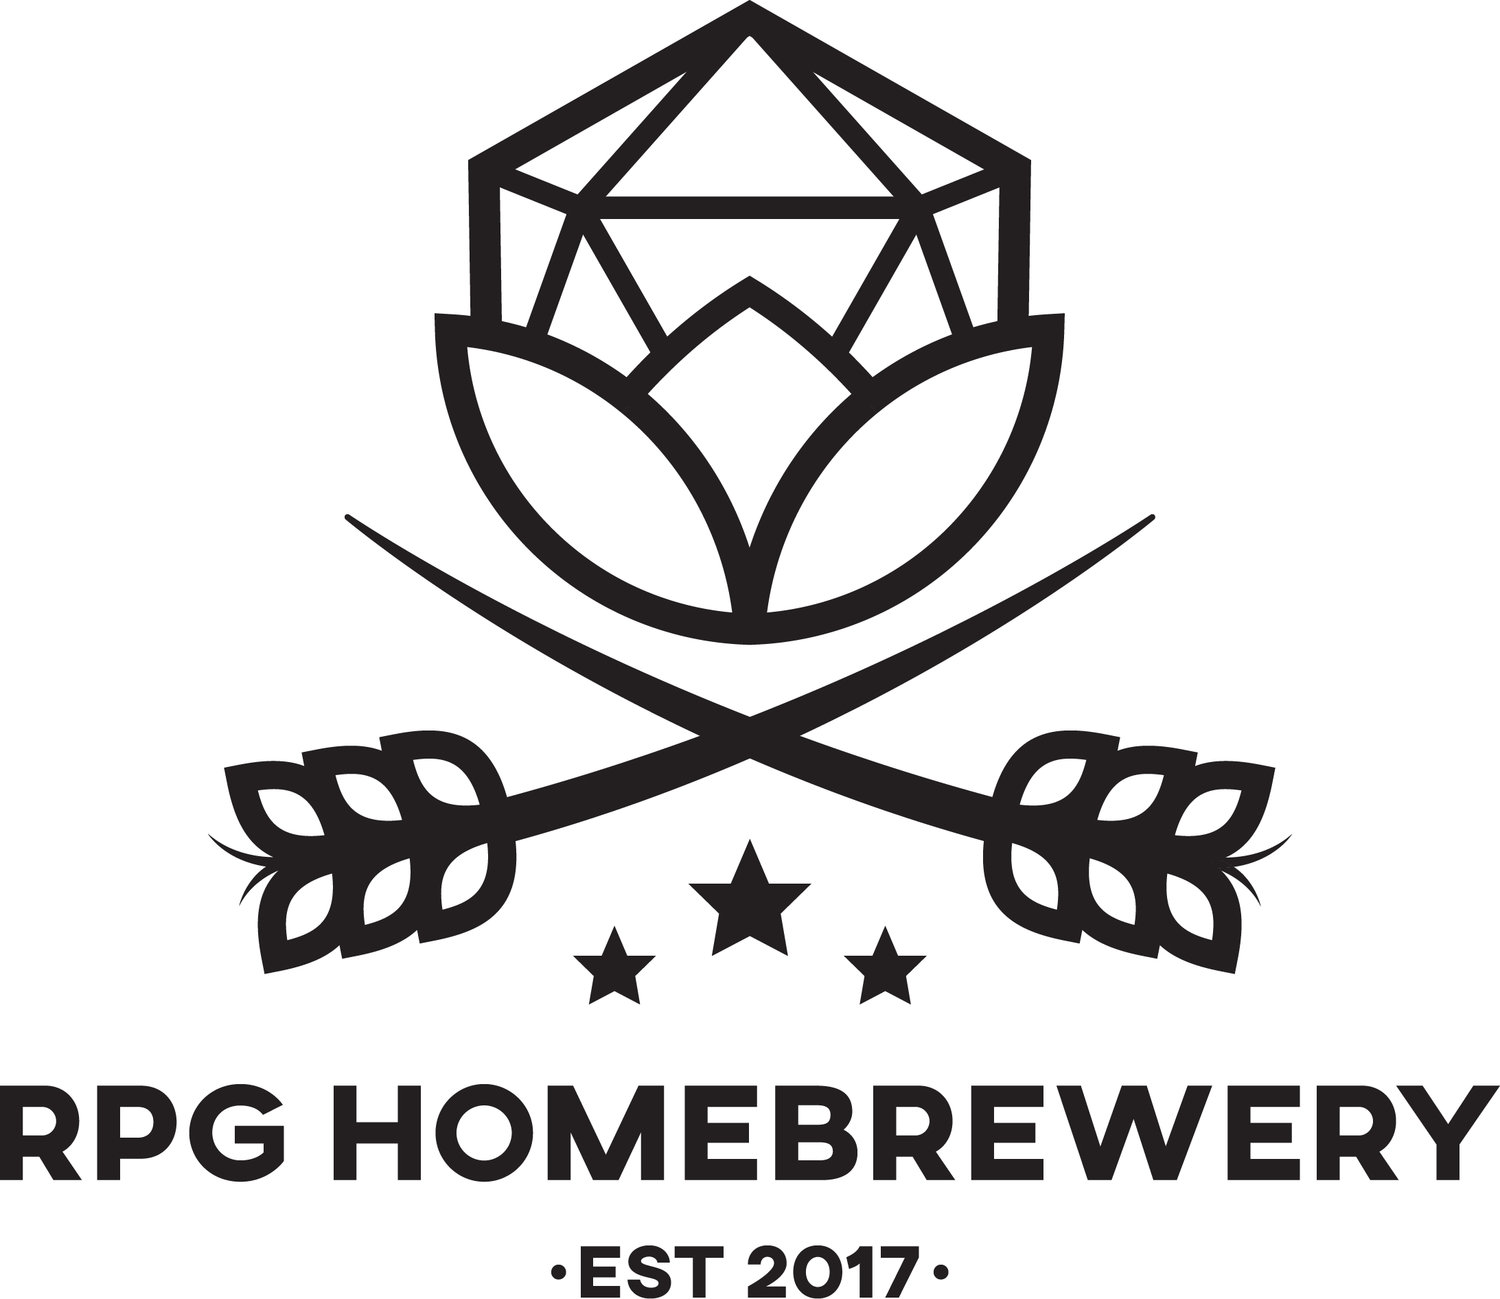 RPG Homebrewery